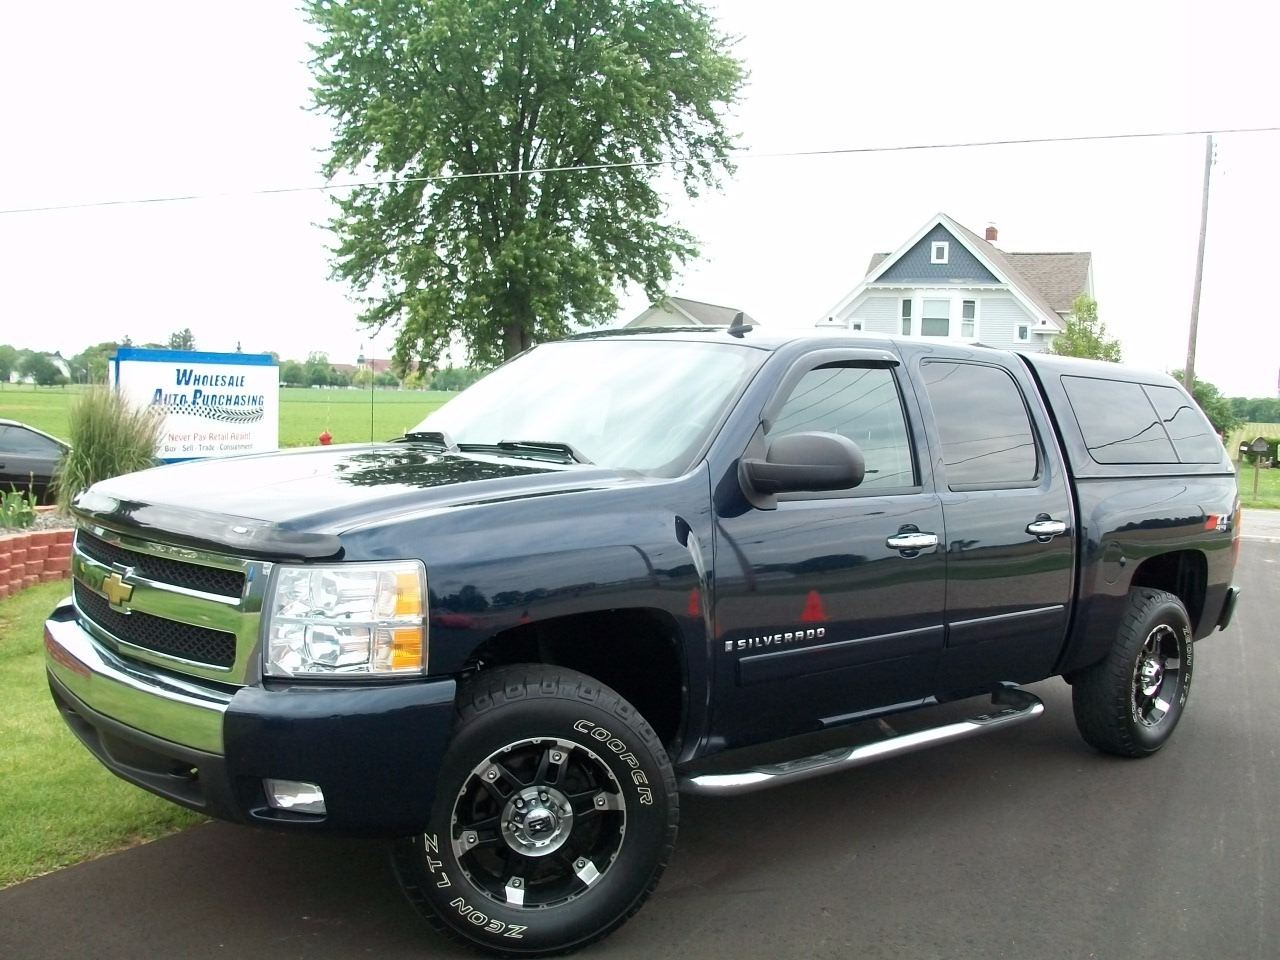 2008 chevrolet silverado 1500 lt1 in frankenmuth mi wholesale auto purchasing. Black Bedroom Furniture Sets. Home Design Ideas